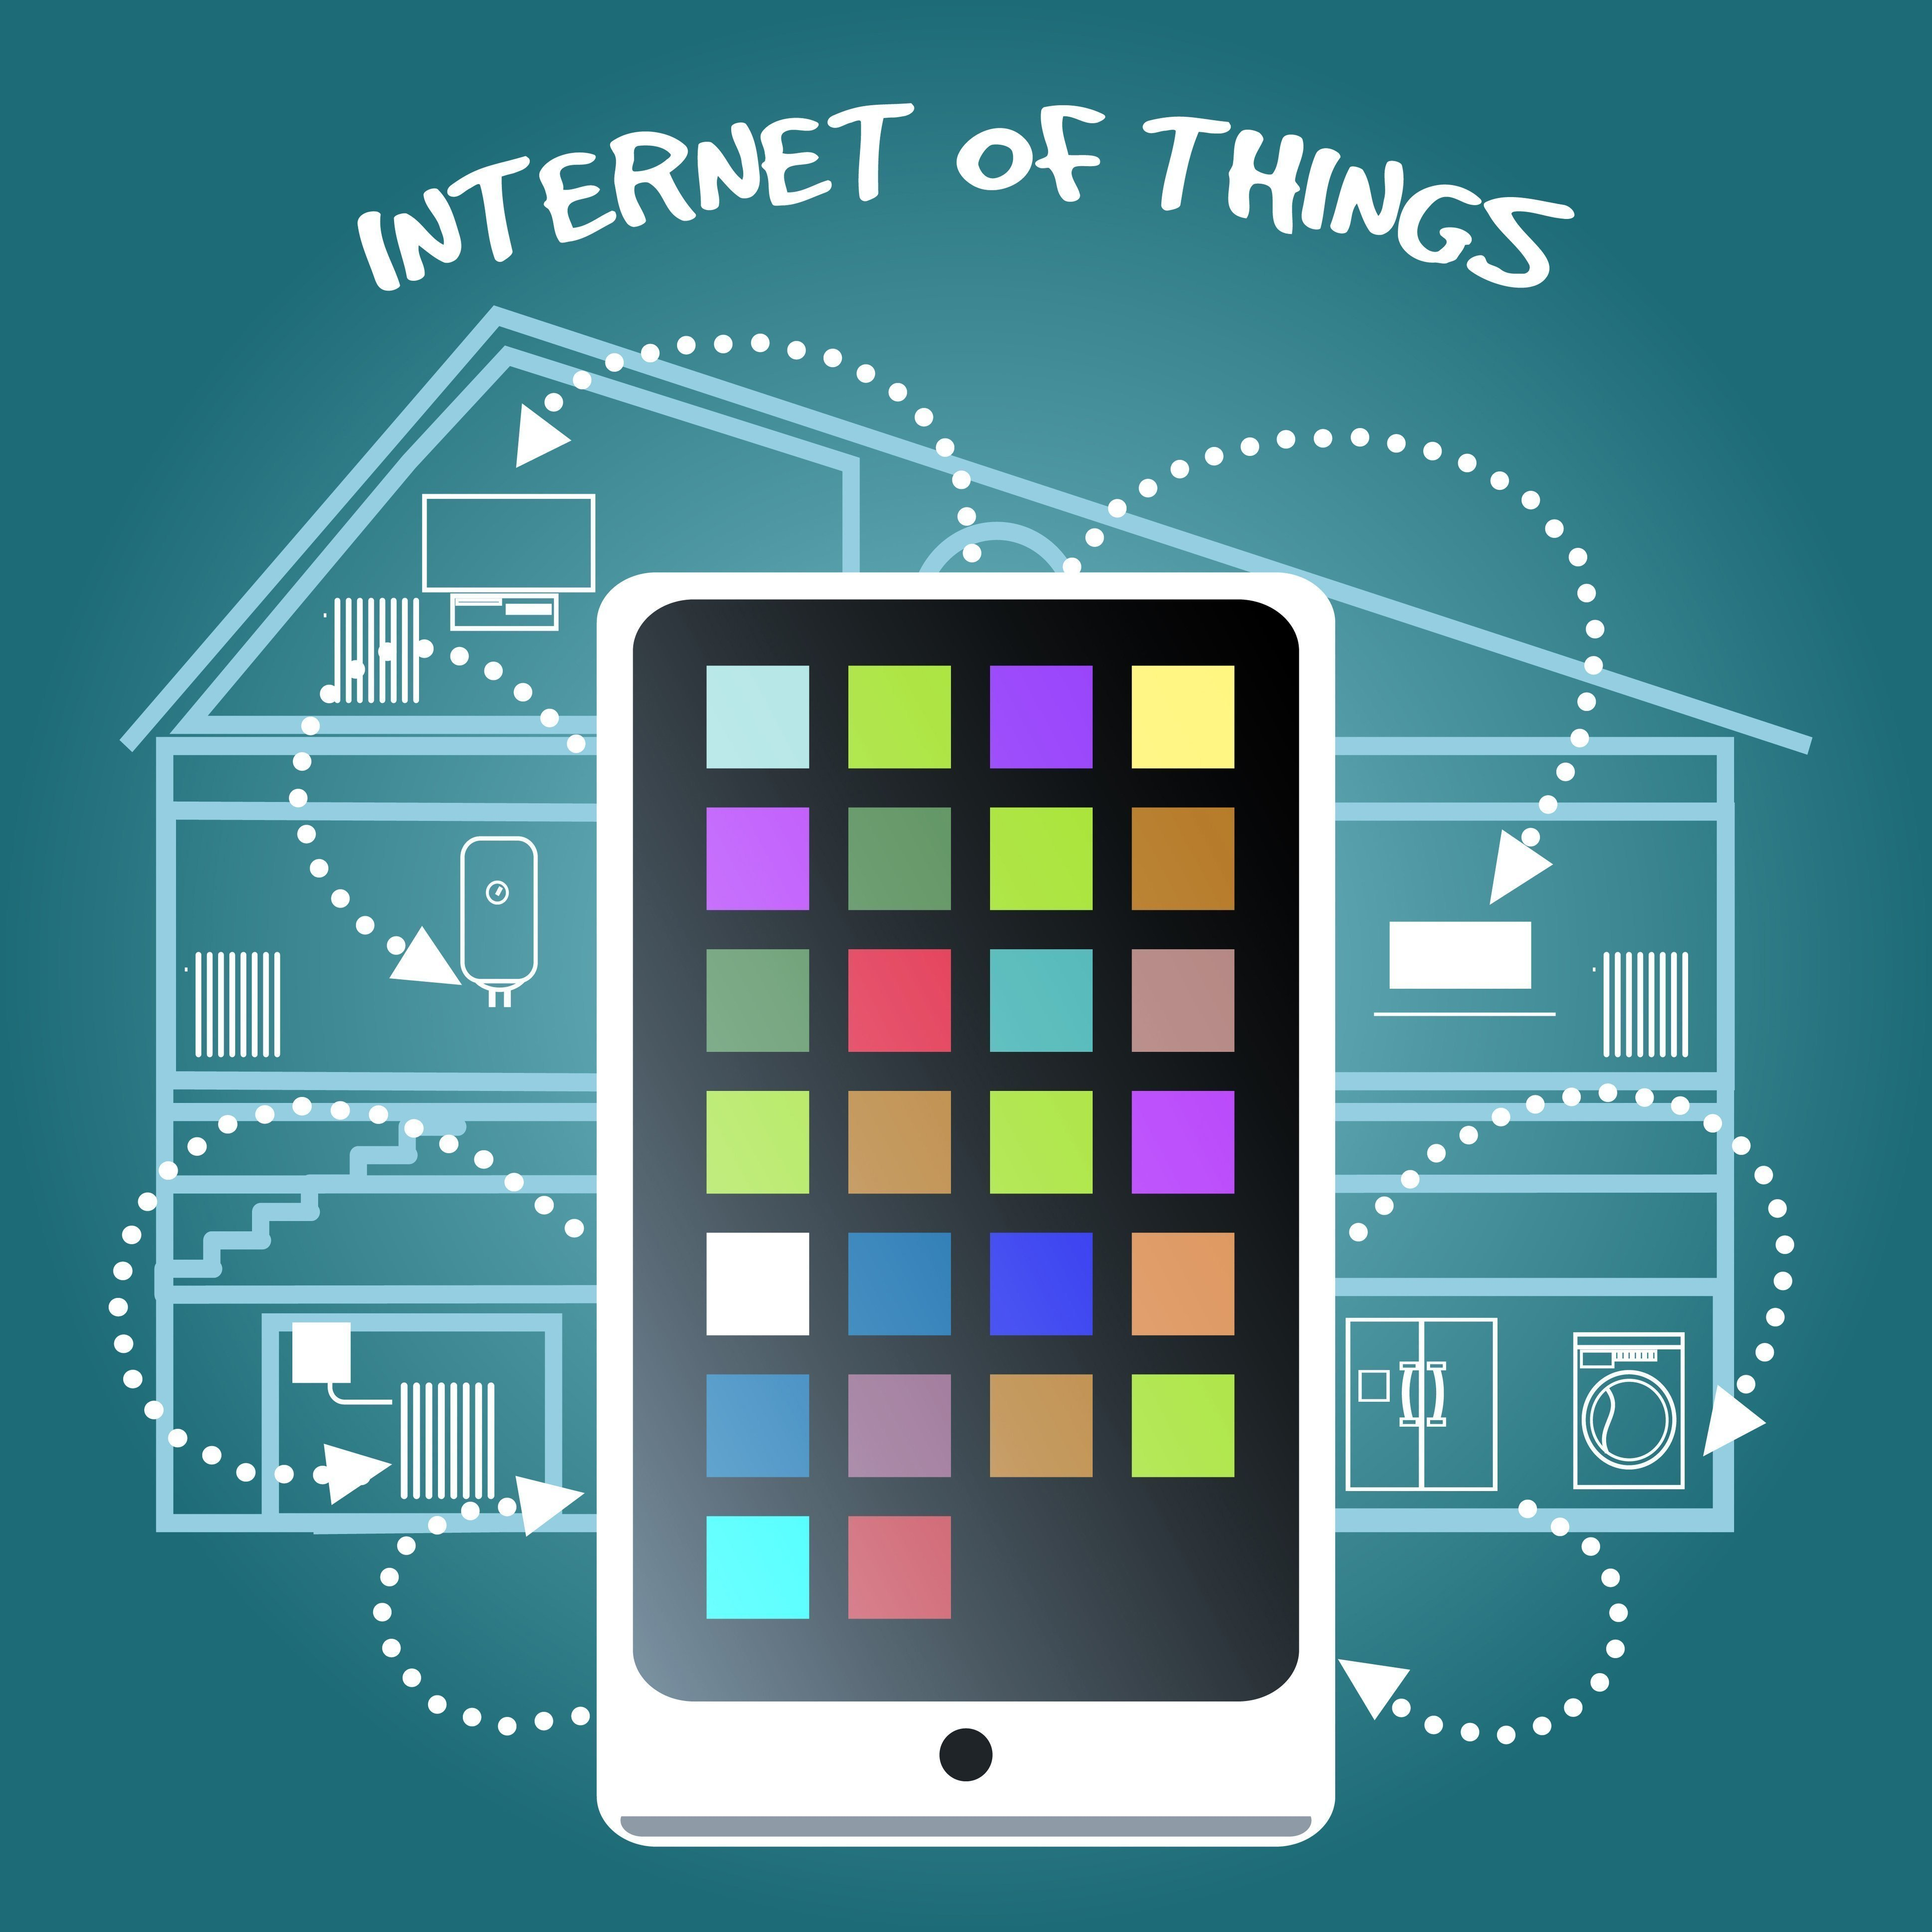 IoT could make ERP flexible, intelligent and real-time